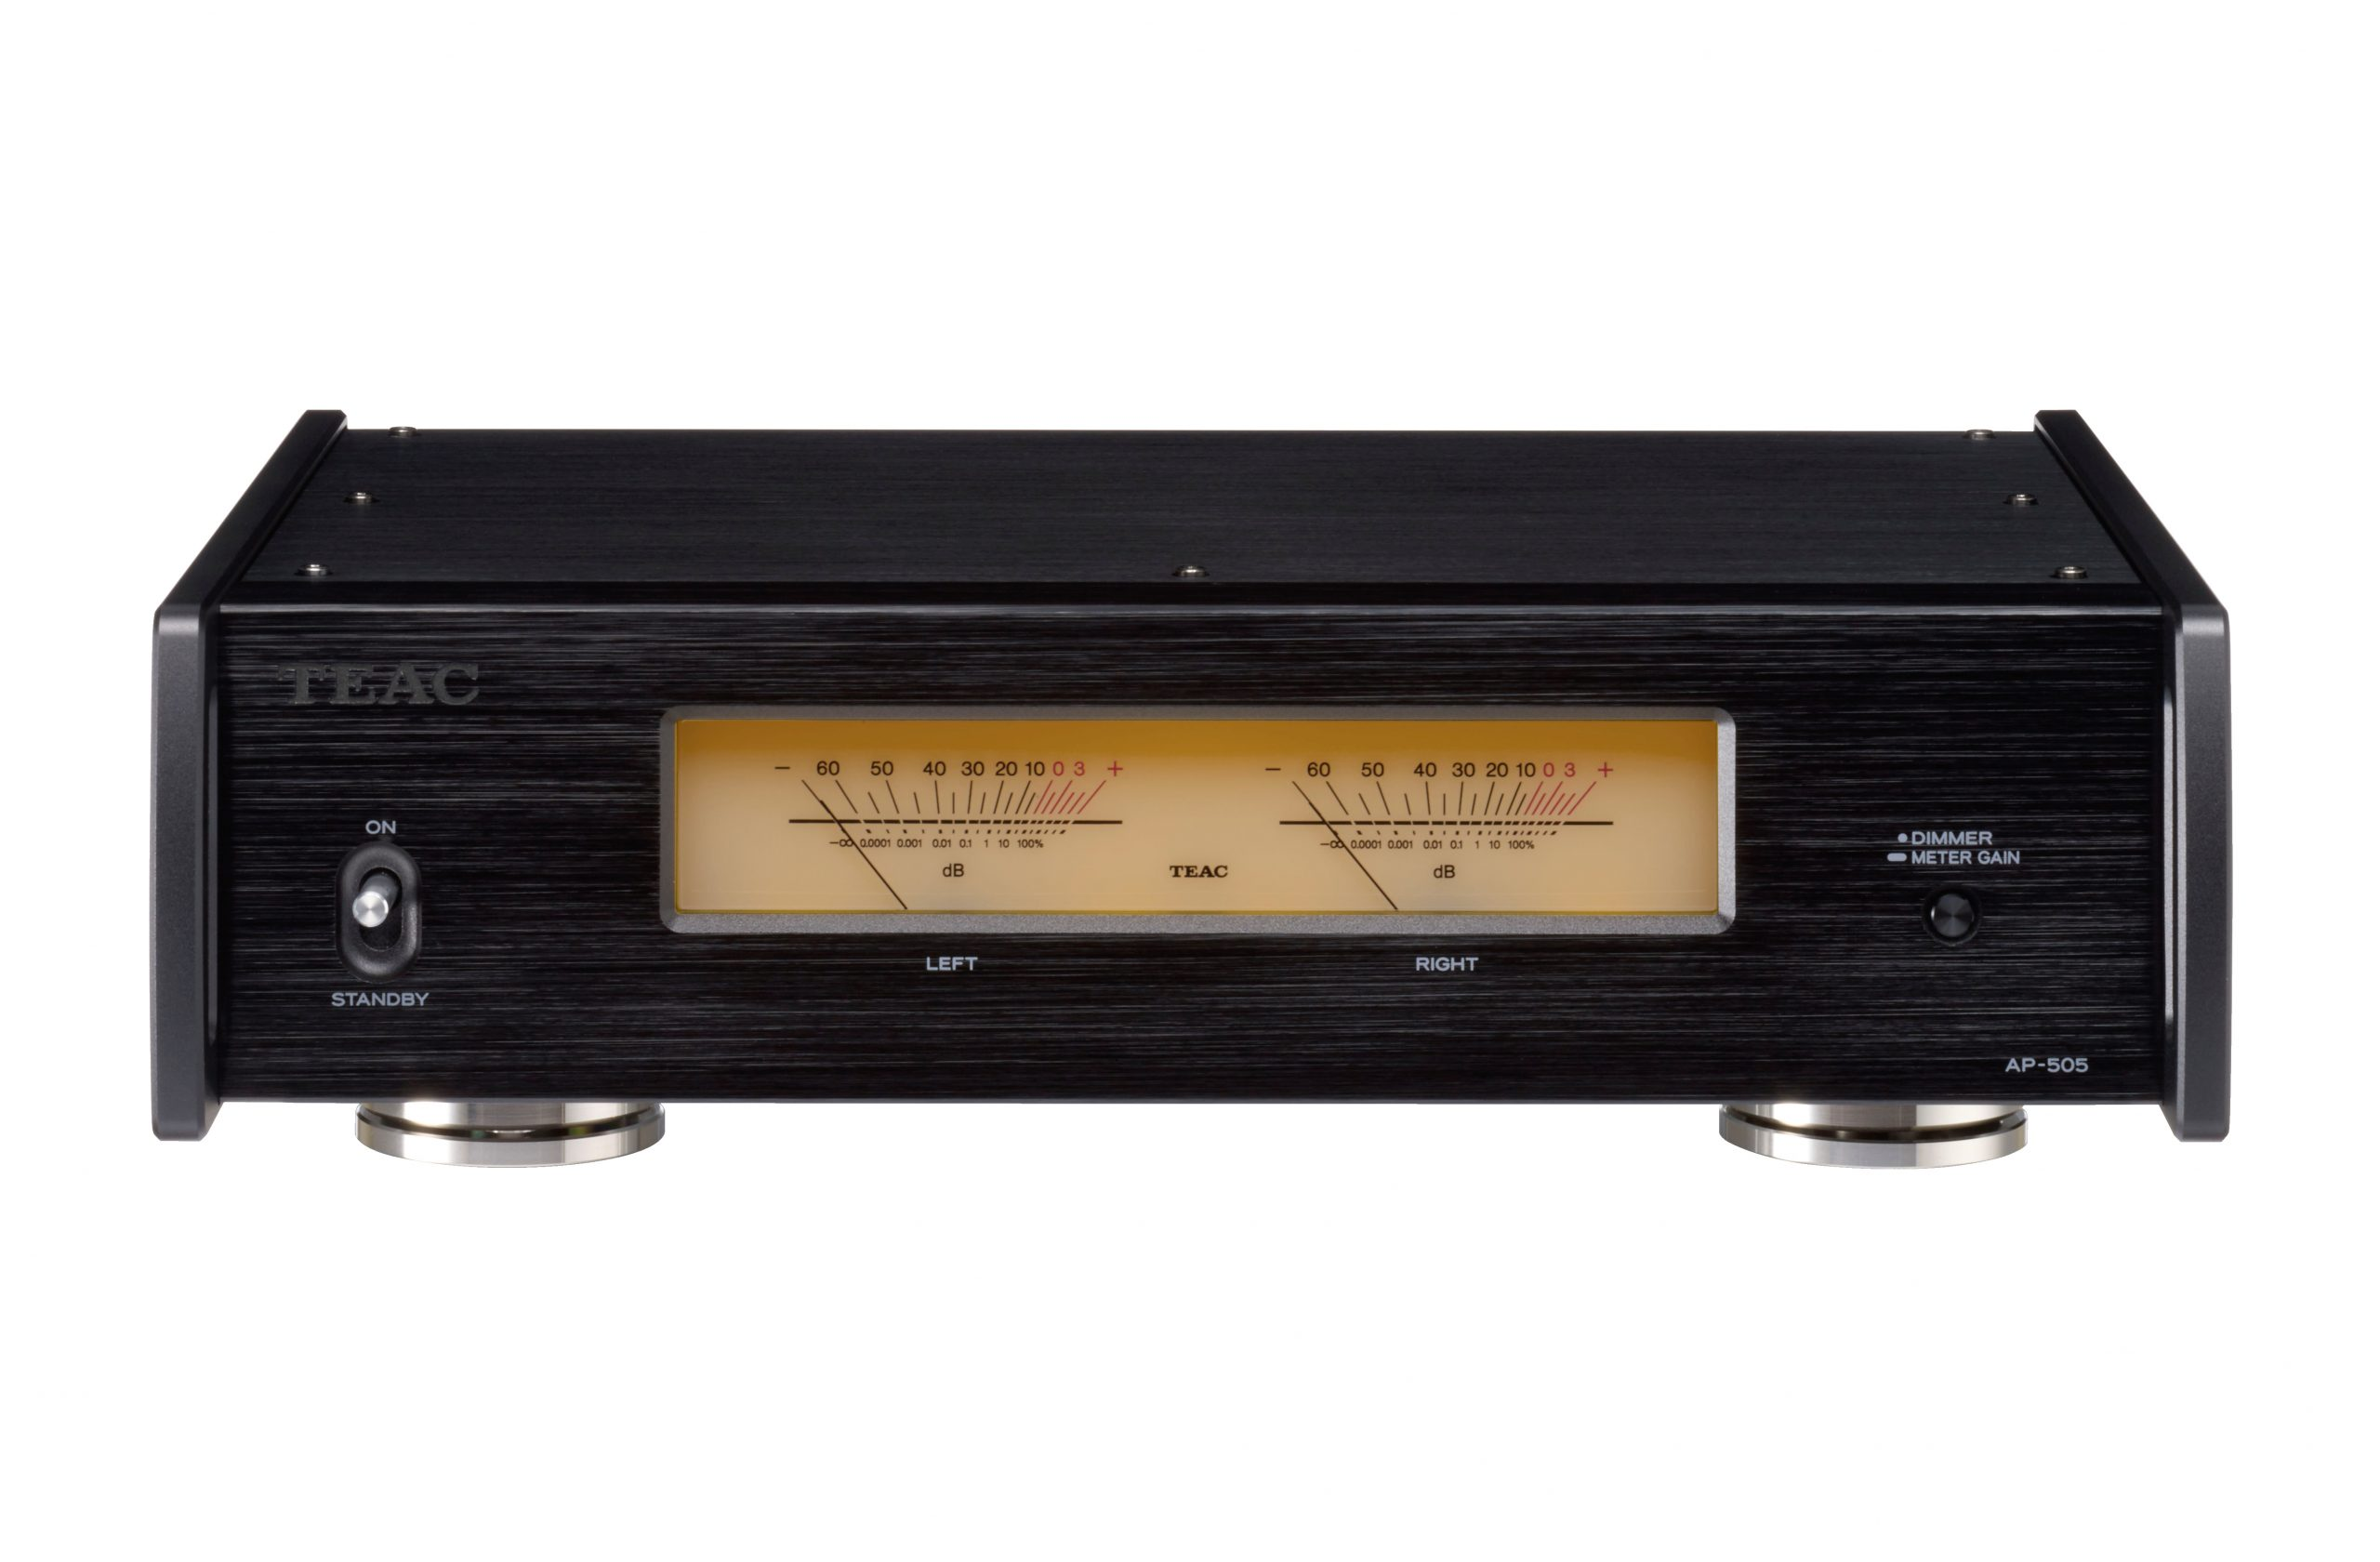 TEAC AP-505 Amplifier